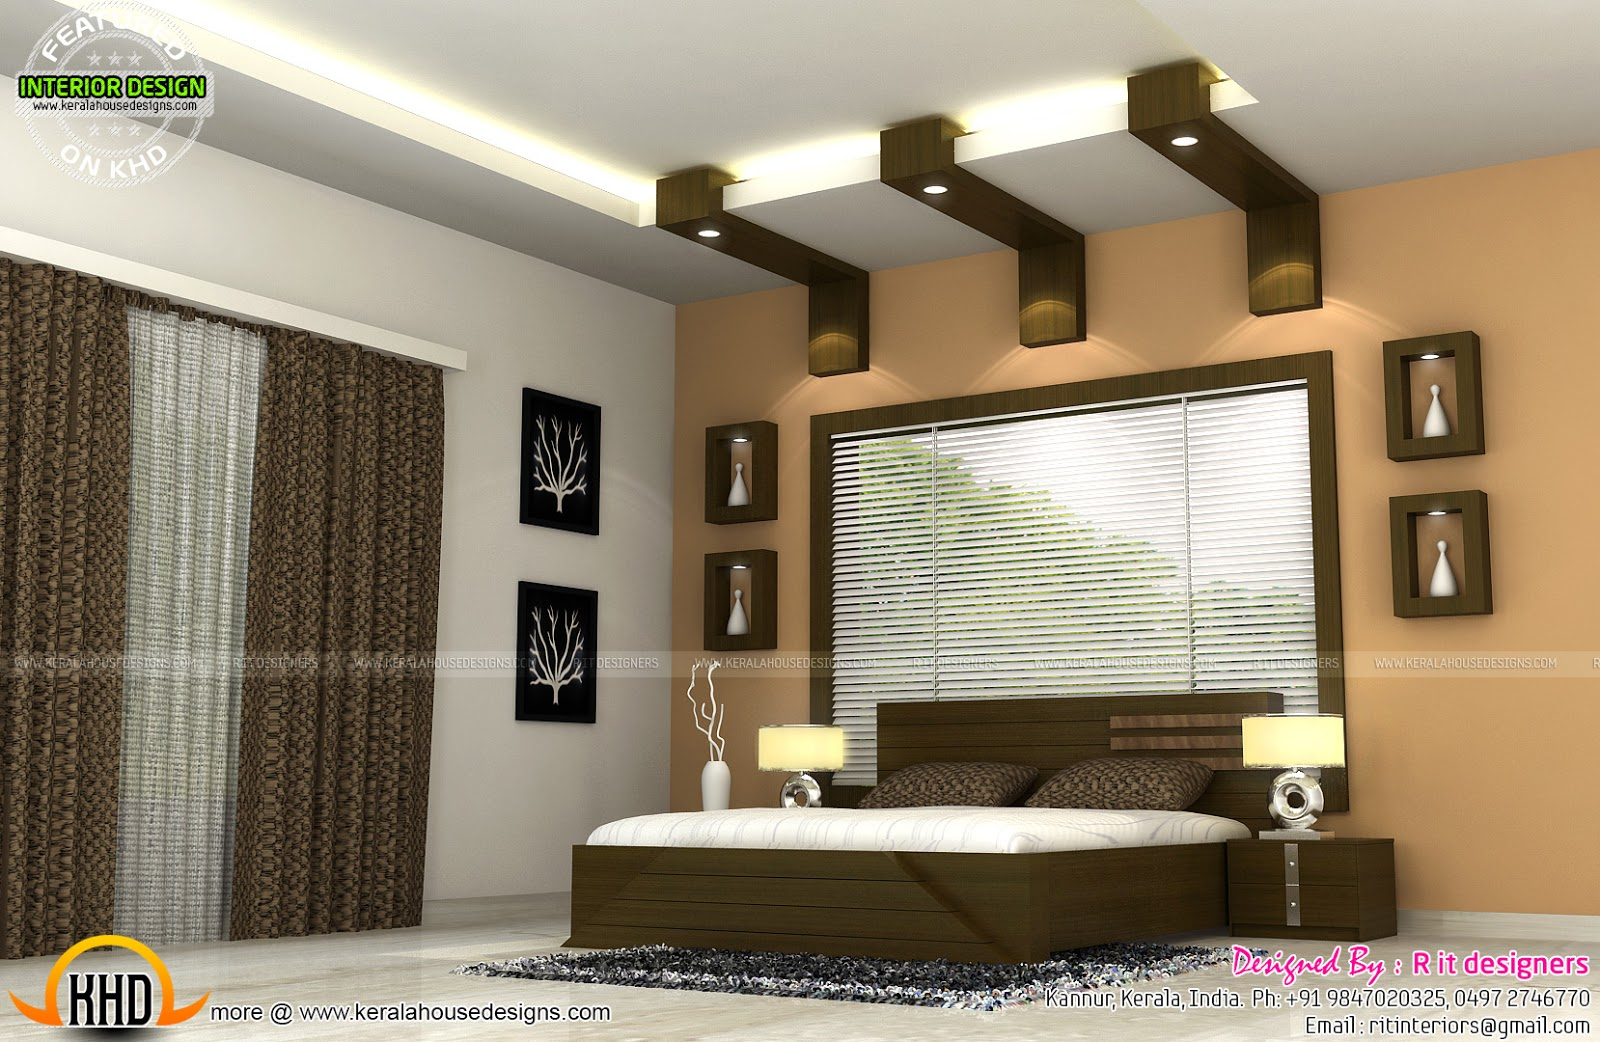 Interiors of bedrooms and kitchen kerala home design and for Interior design plans for houses